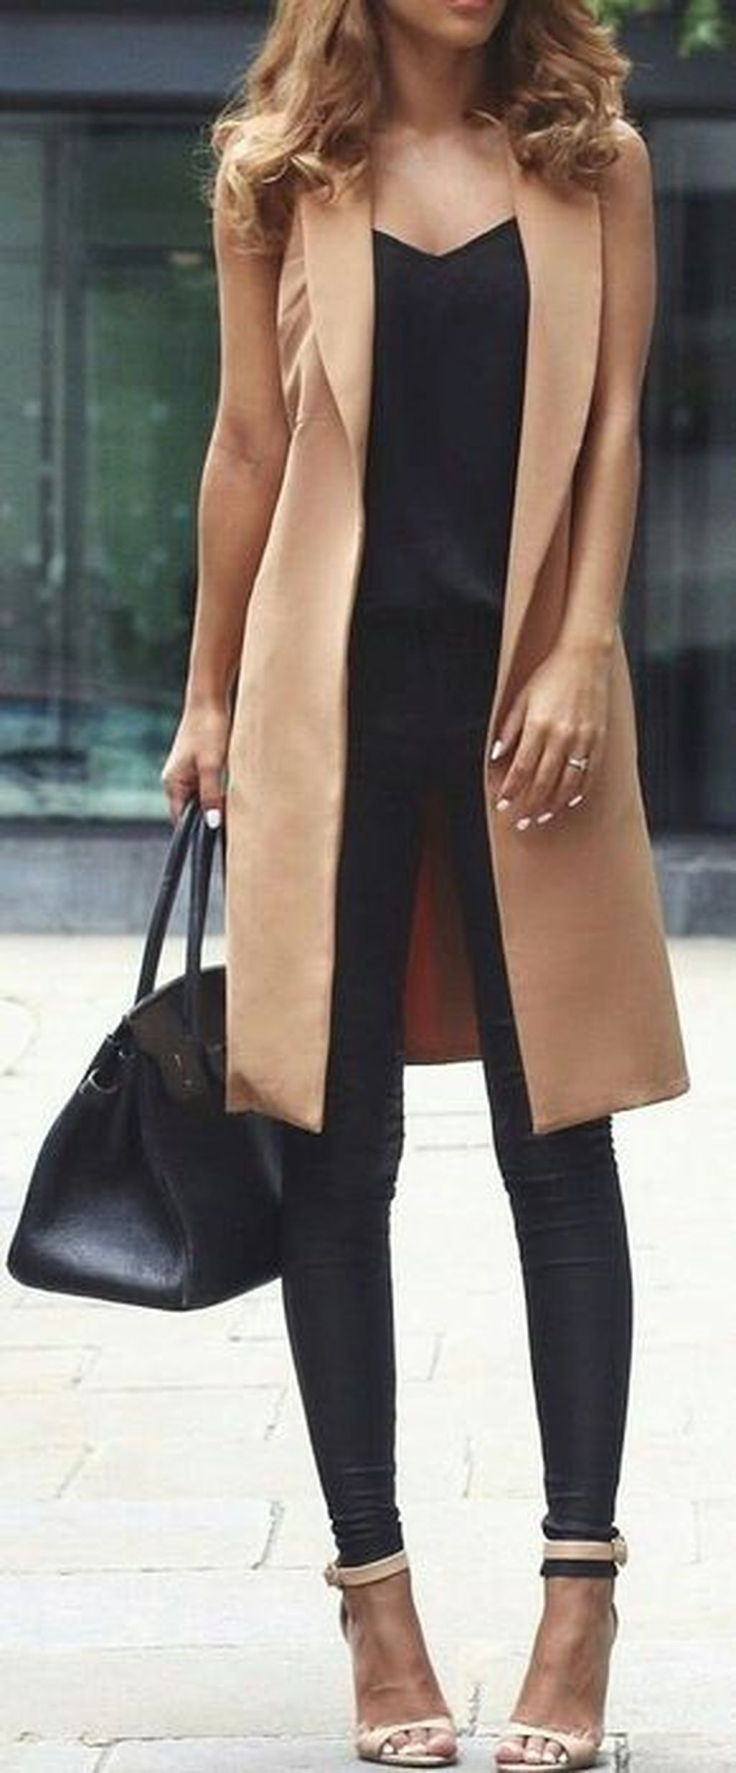 48 Stunning Women Khaki Outfit Ideas Best For Spring And Summer